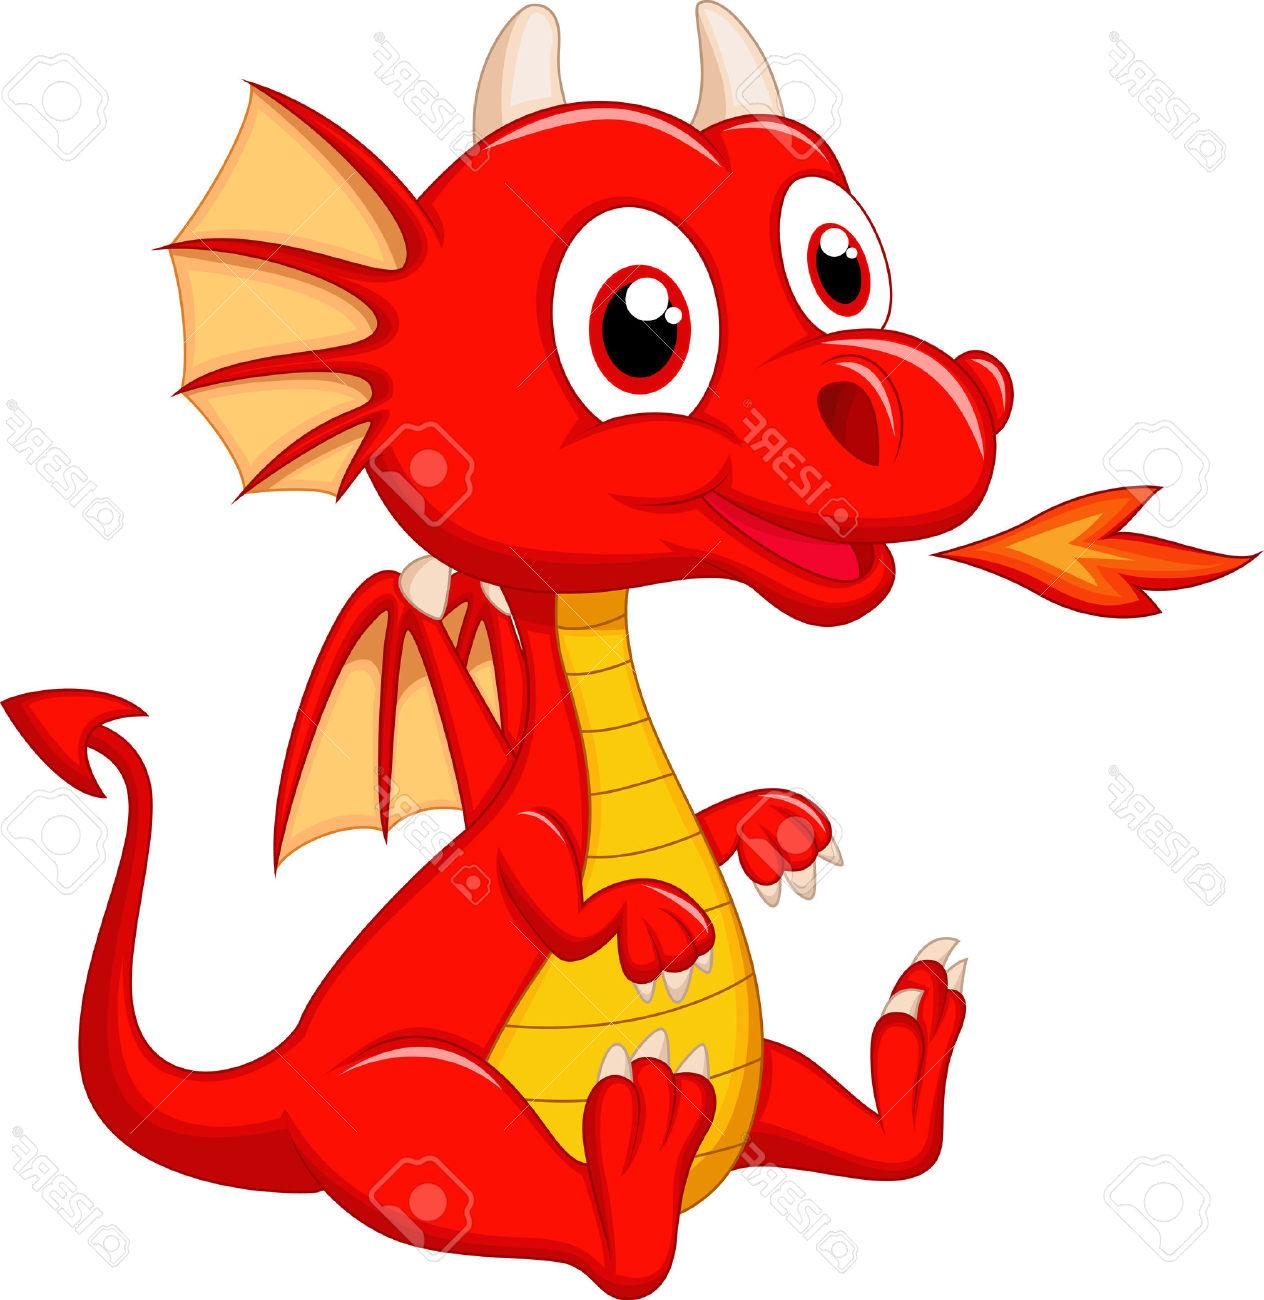 1264x1300 Best Hd Cute Baby Dragon Cartoon Stock Vector Library